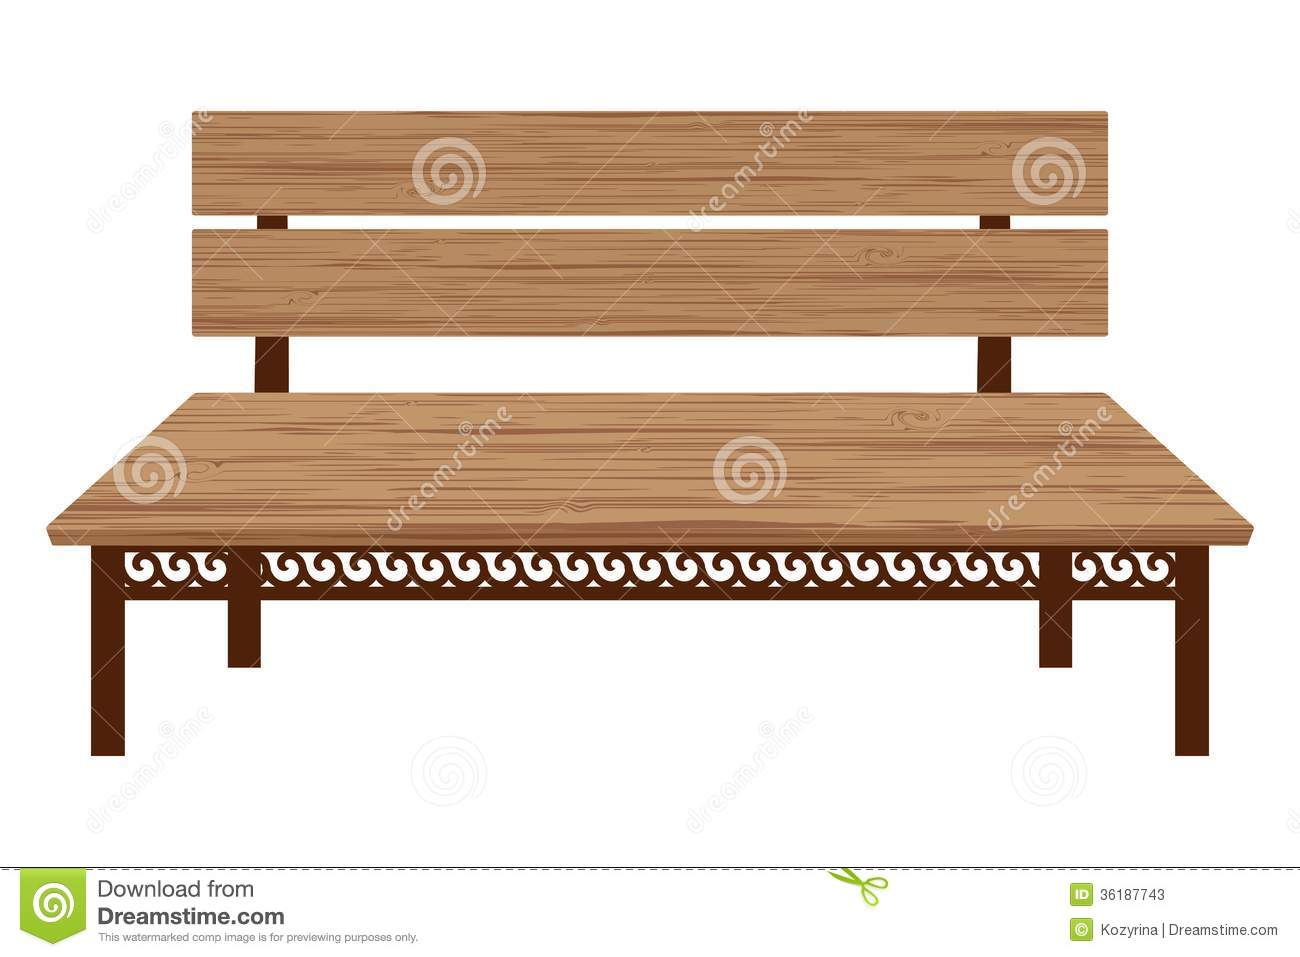 Marvelous photograph of Wooden Bench Stock Photos Image: 36187743 with #481C08 color and 1300x957 pixels